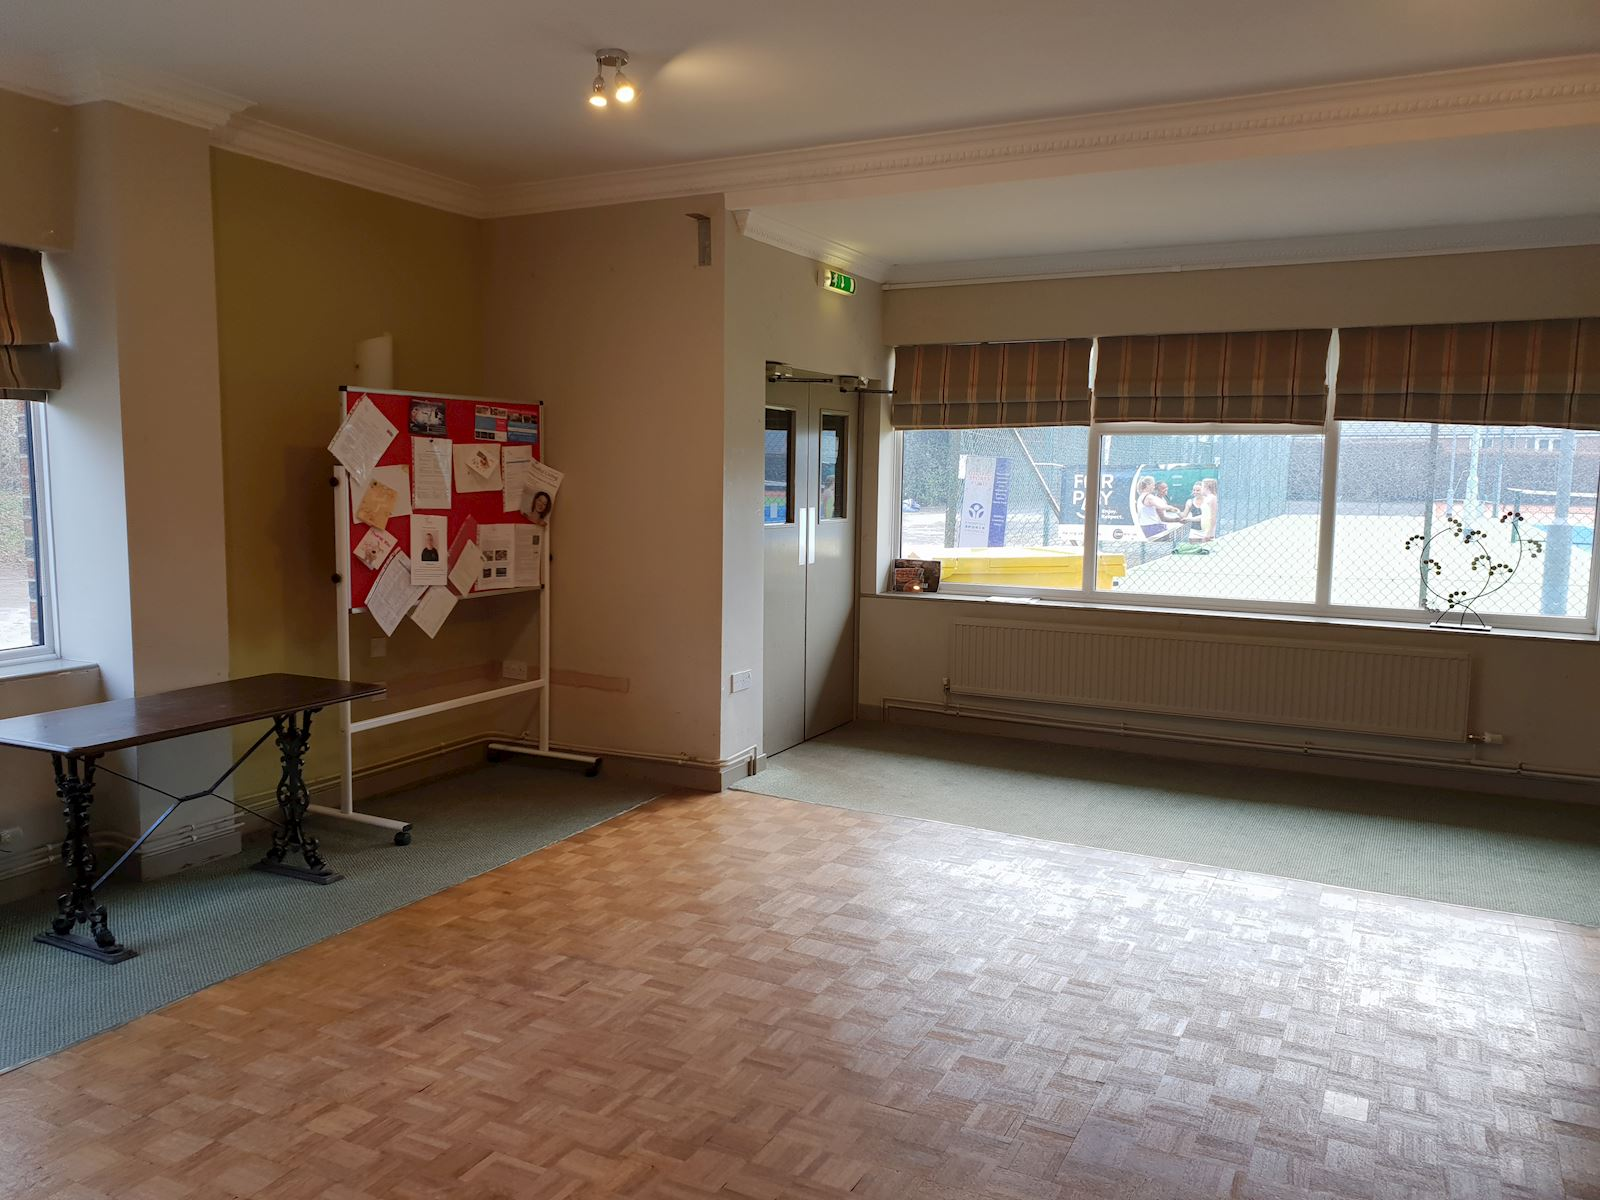 Downstairs function room 1